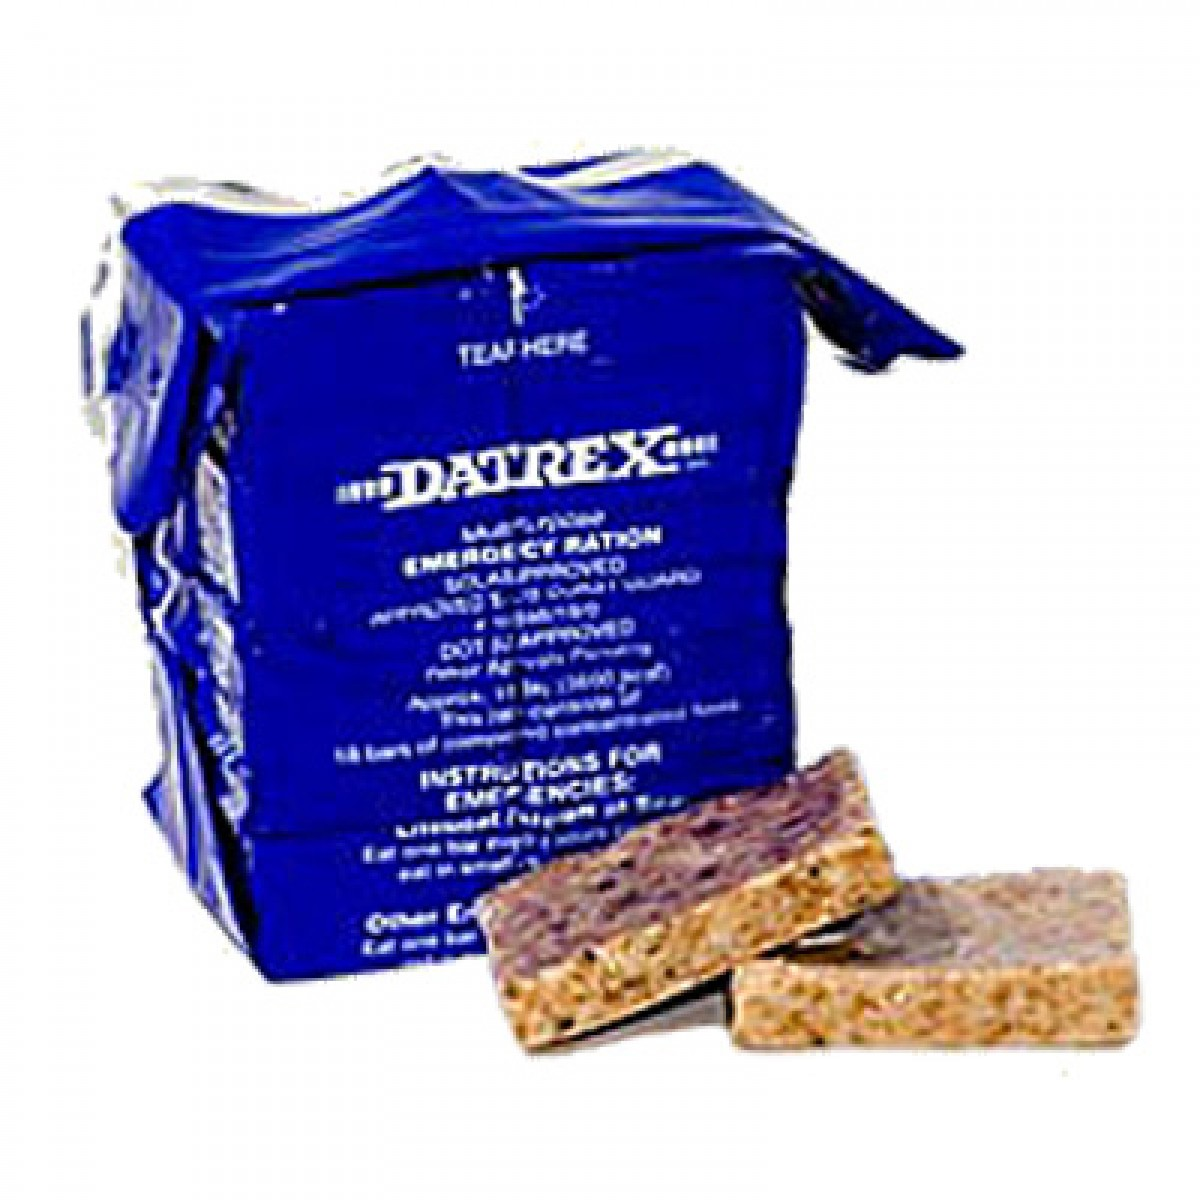 Datrex emergency food ration bar civic safety for Er food bar 3600 calorie